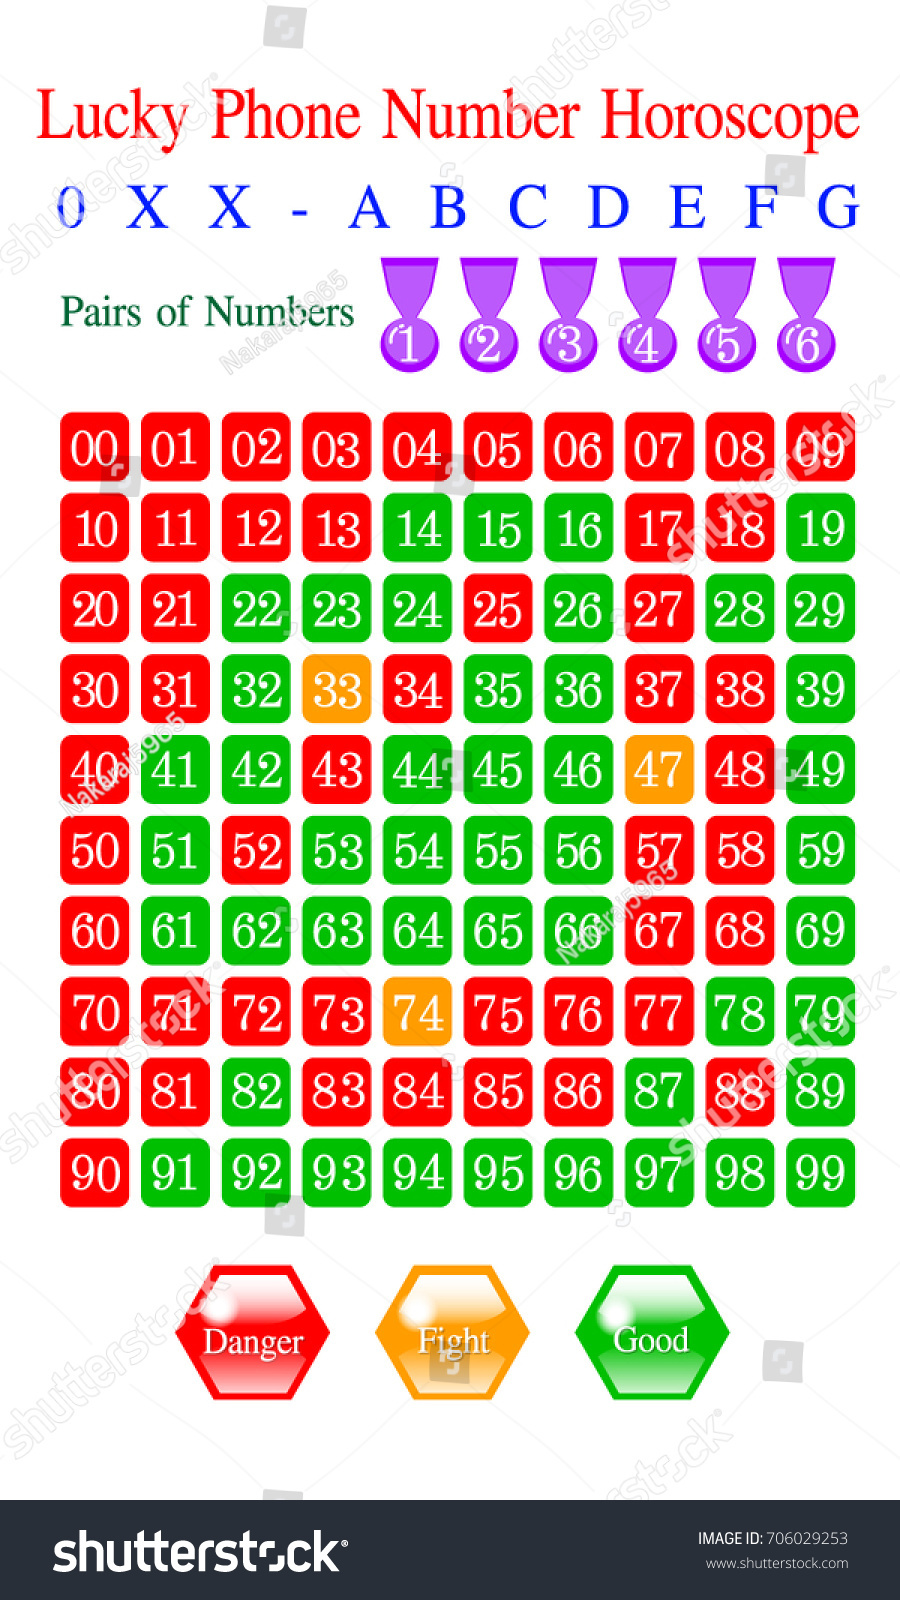 Lucky Phone Number Horoscope 00 to 99, white numbers on red,orange and green